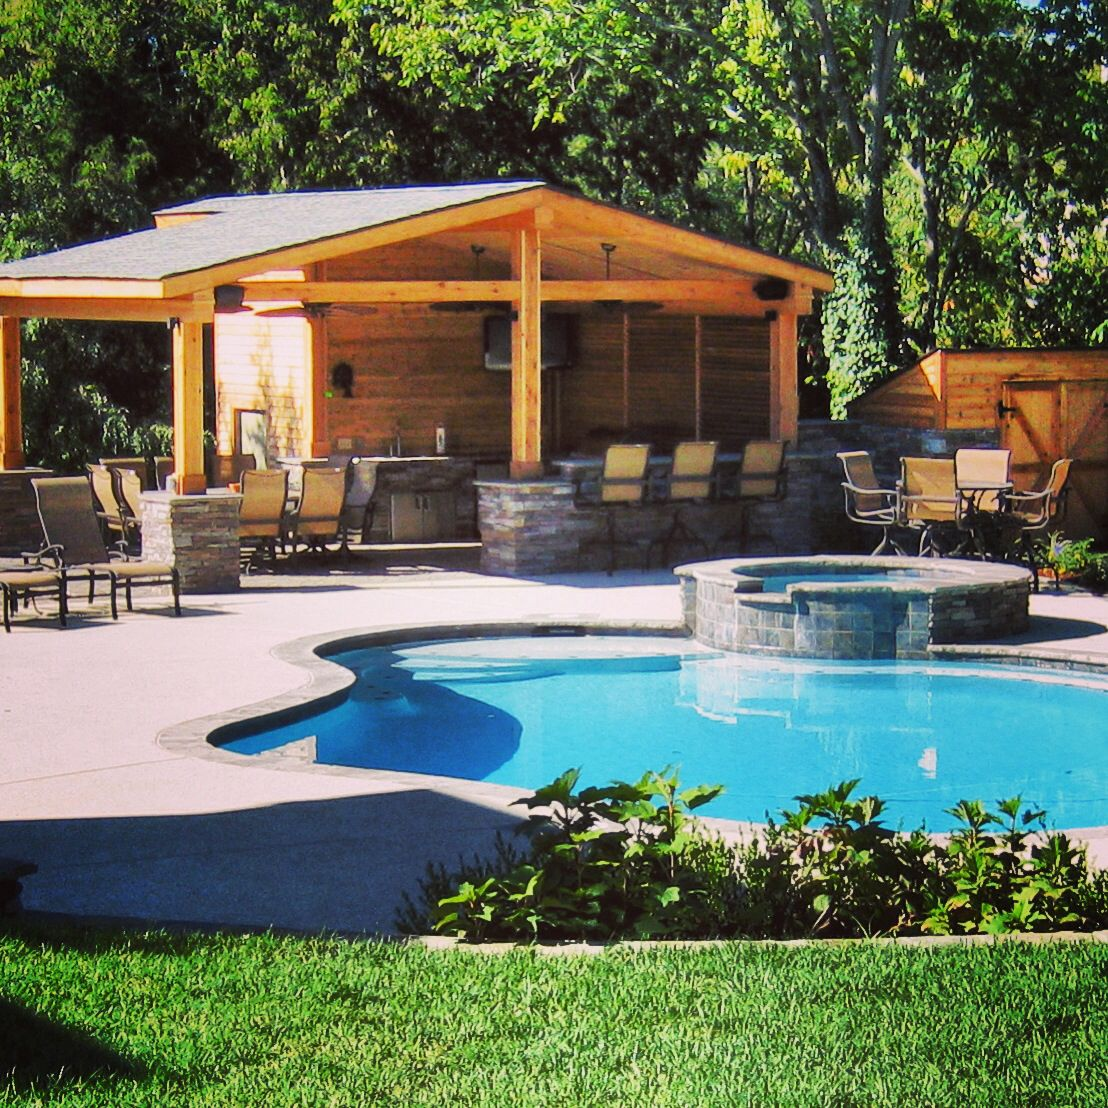 Outdoor Pool Patio Structure